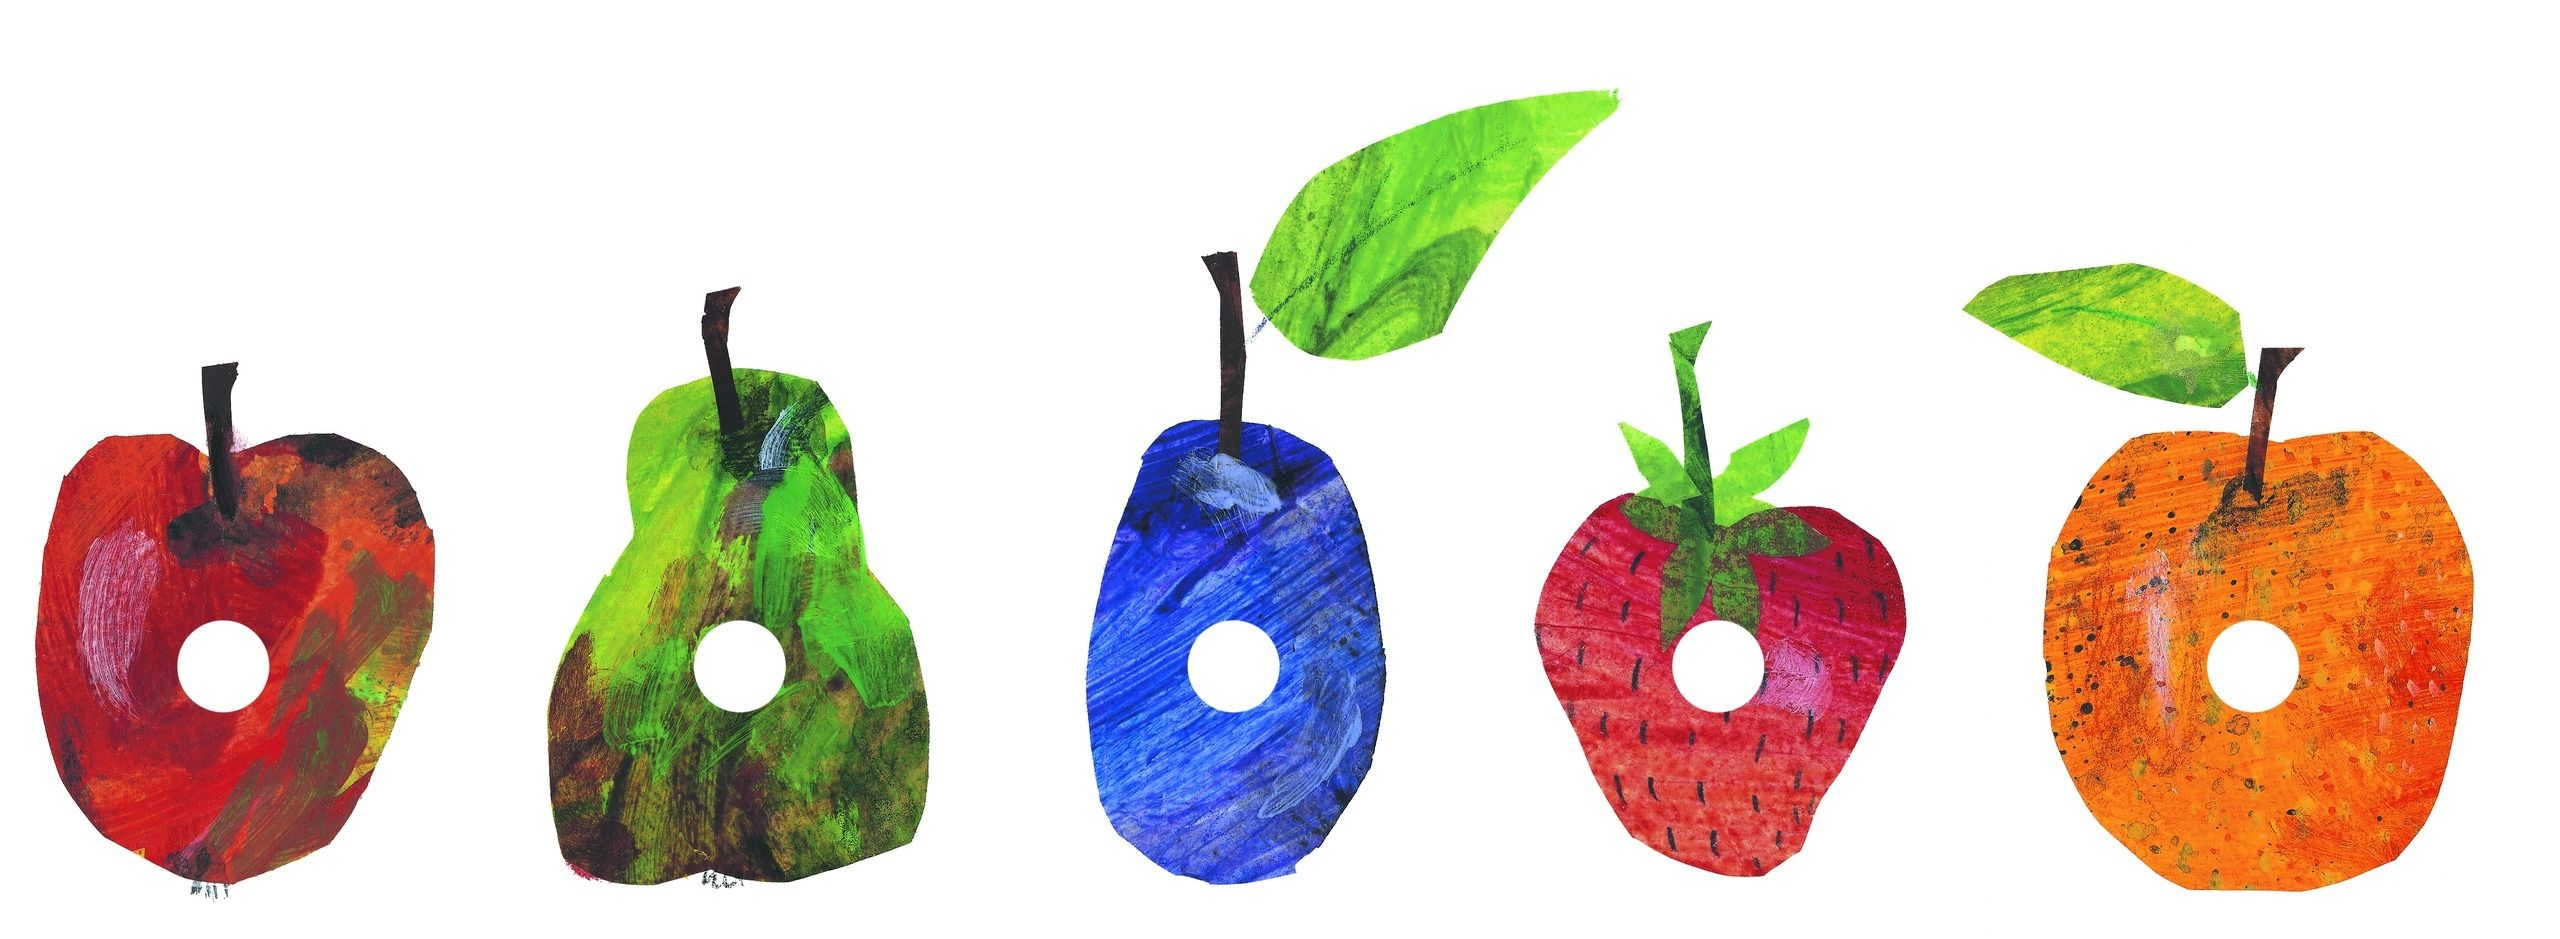 Free Printable The Very Hungry Caterpillar All The Fruit In A Row